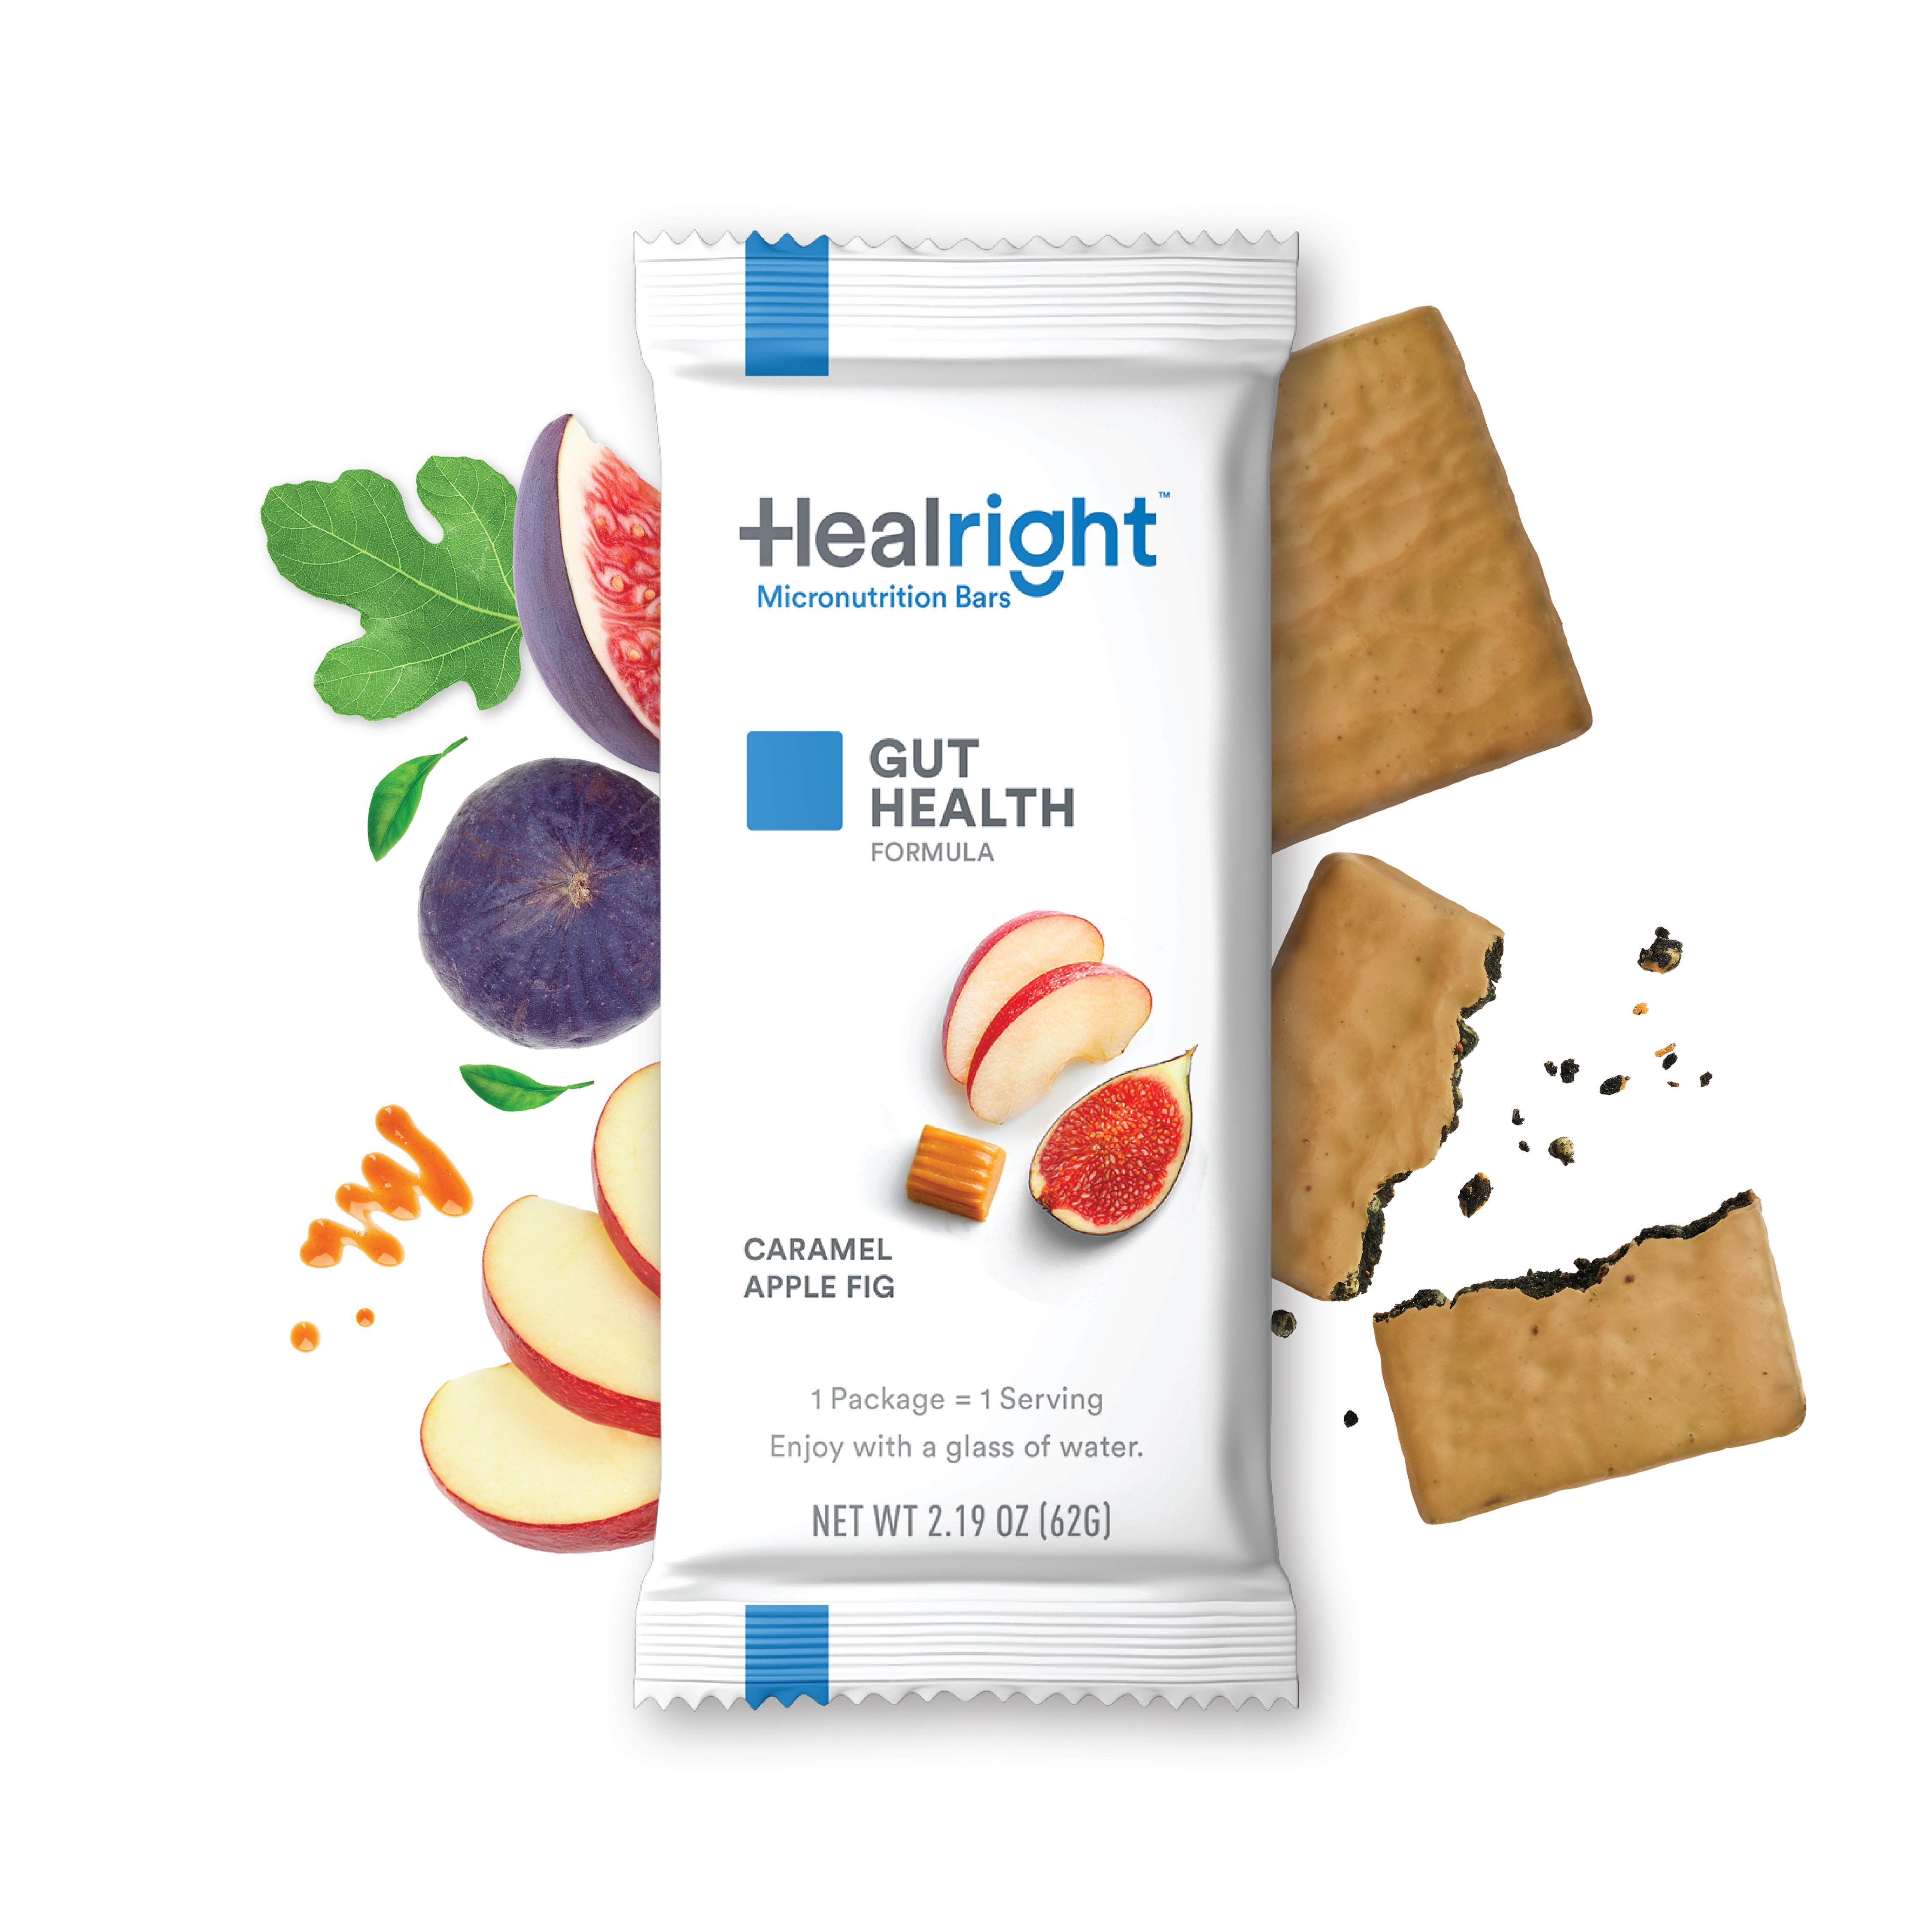 Healright Try with Caramel Apple Fig flavor